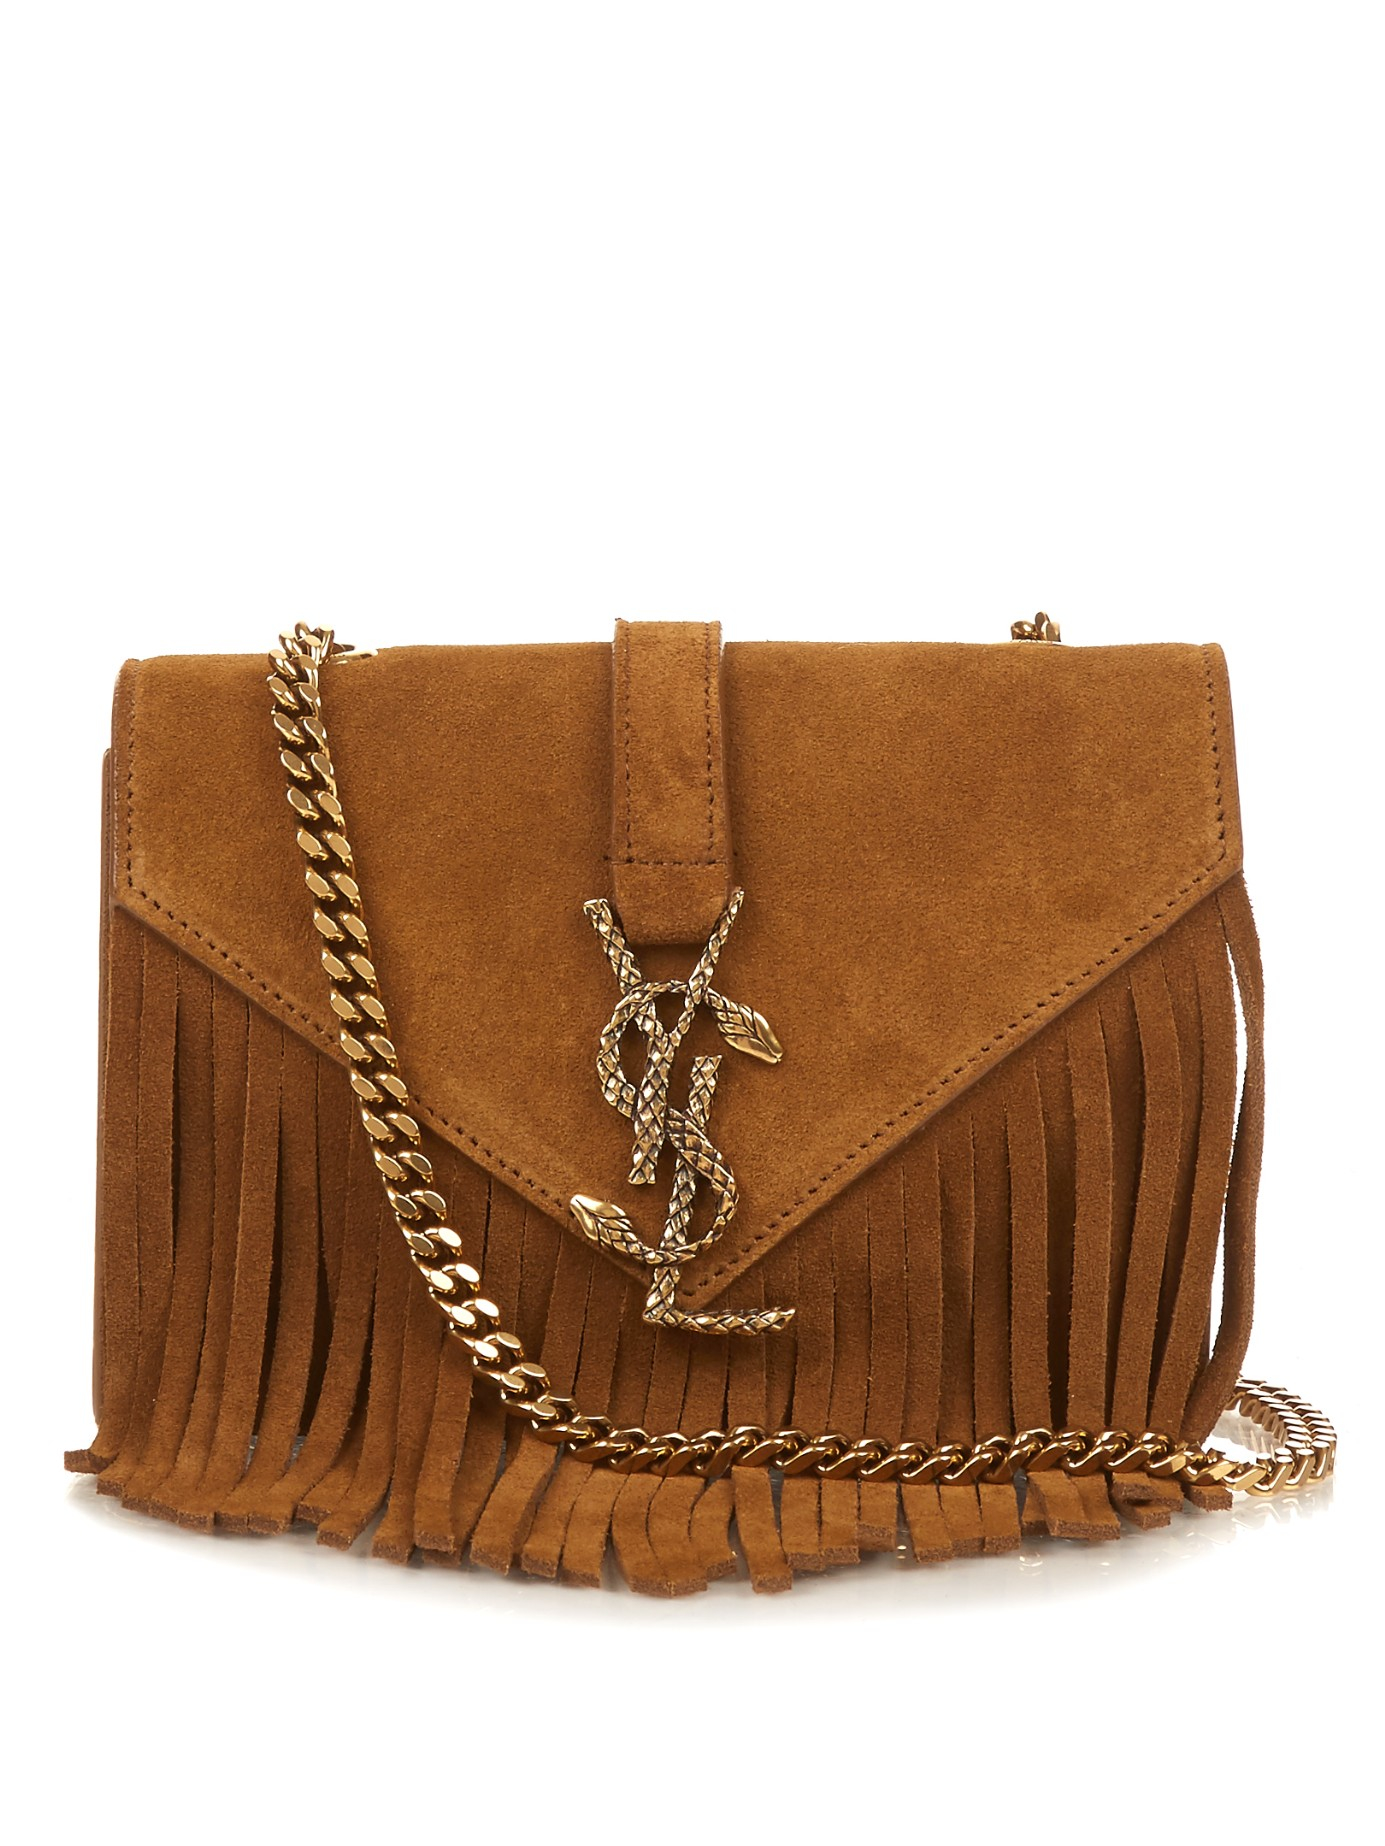 Small Monogram Saint Laurent Fringed Crossbody Bag In